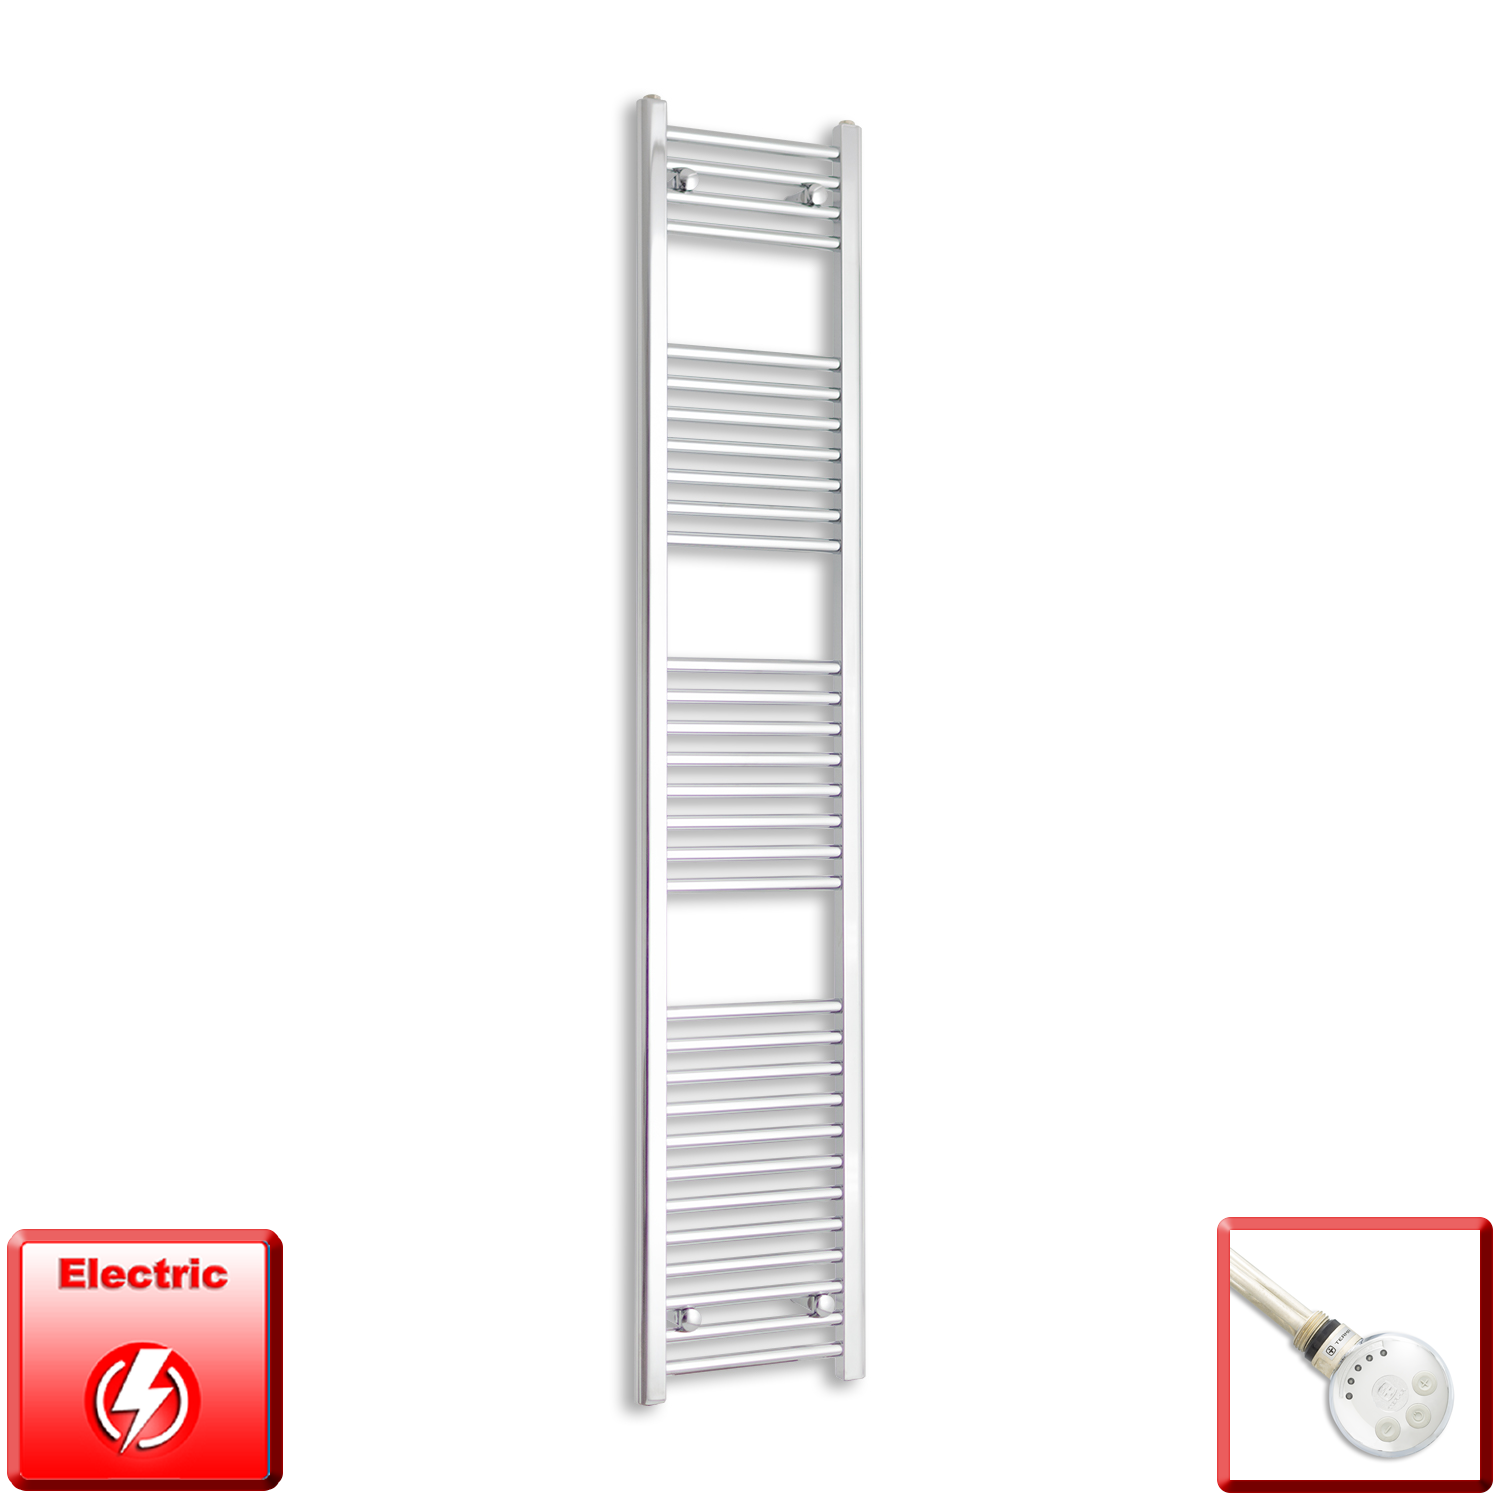 350mm Wide 1800mm High Flat Chrome Pre-Filled Electric Heated Towel Rail Radiator HTR,MEG Thermostatic Element